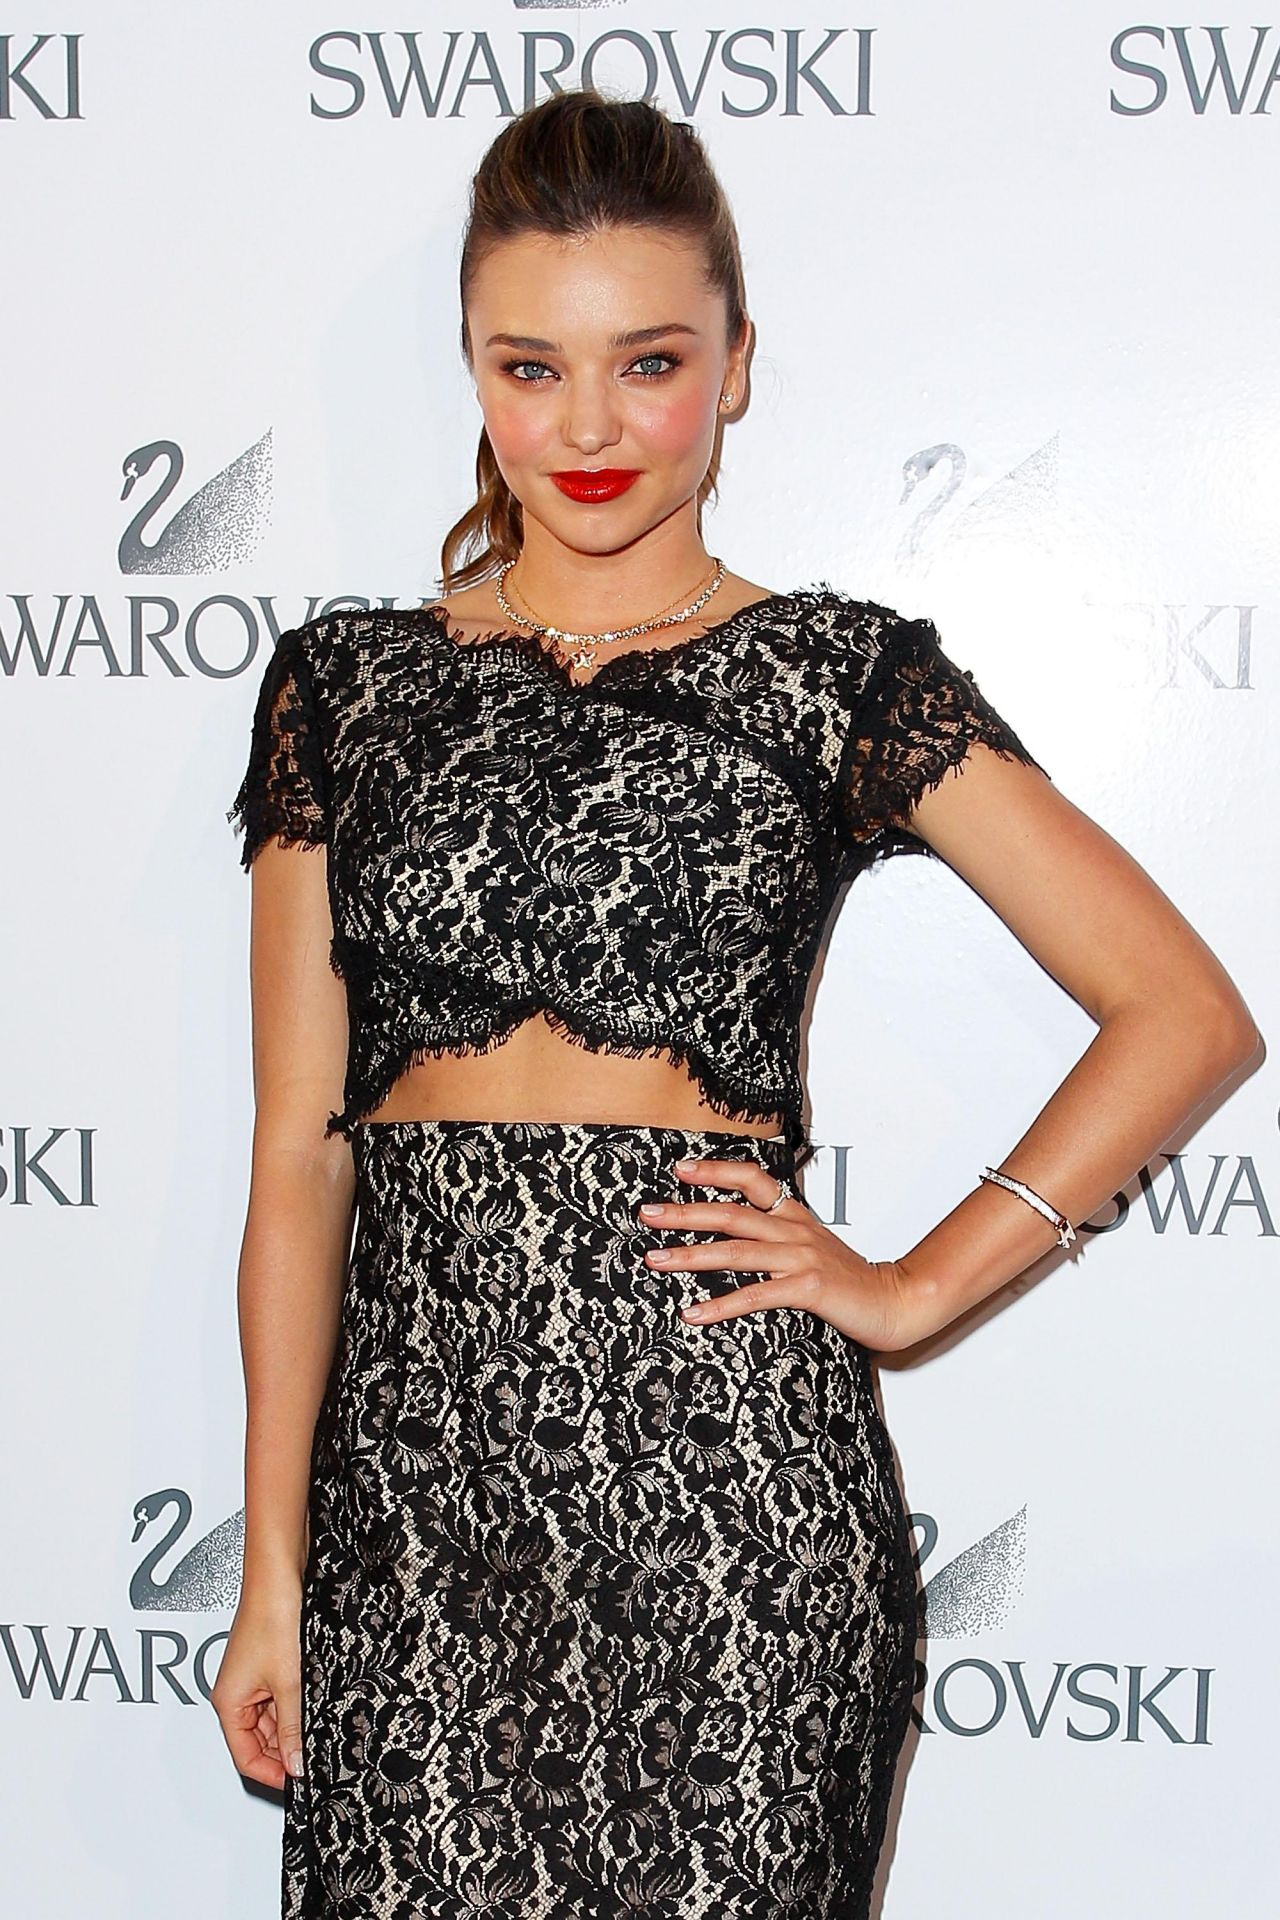 Miranda Kerr Wearing Lover Dress at  Swarovski Gala Dinner at the Sydney Opera House - May 2014